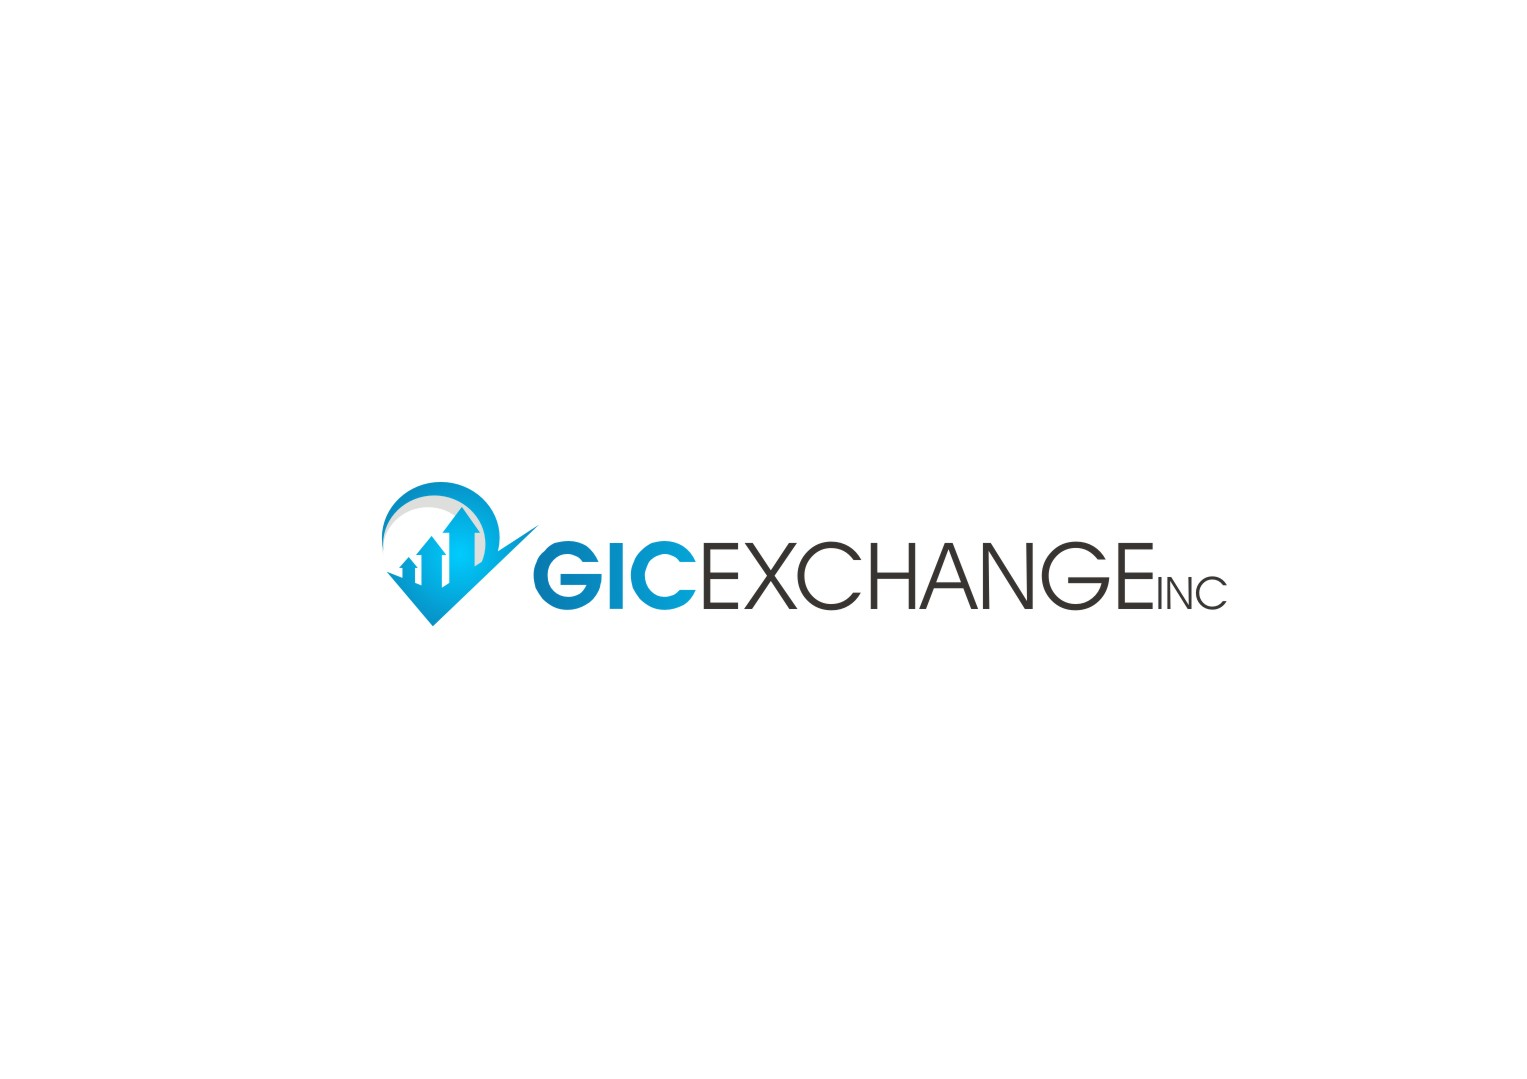 Logo Design by yanxsant - Entry No. 92 in the Logo Design Contest Logo Design Needed for Exciting New Company GIC Exchange Inc..